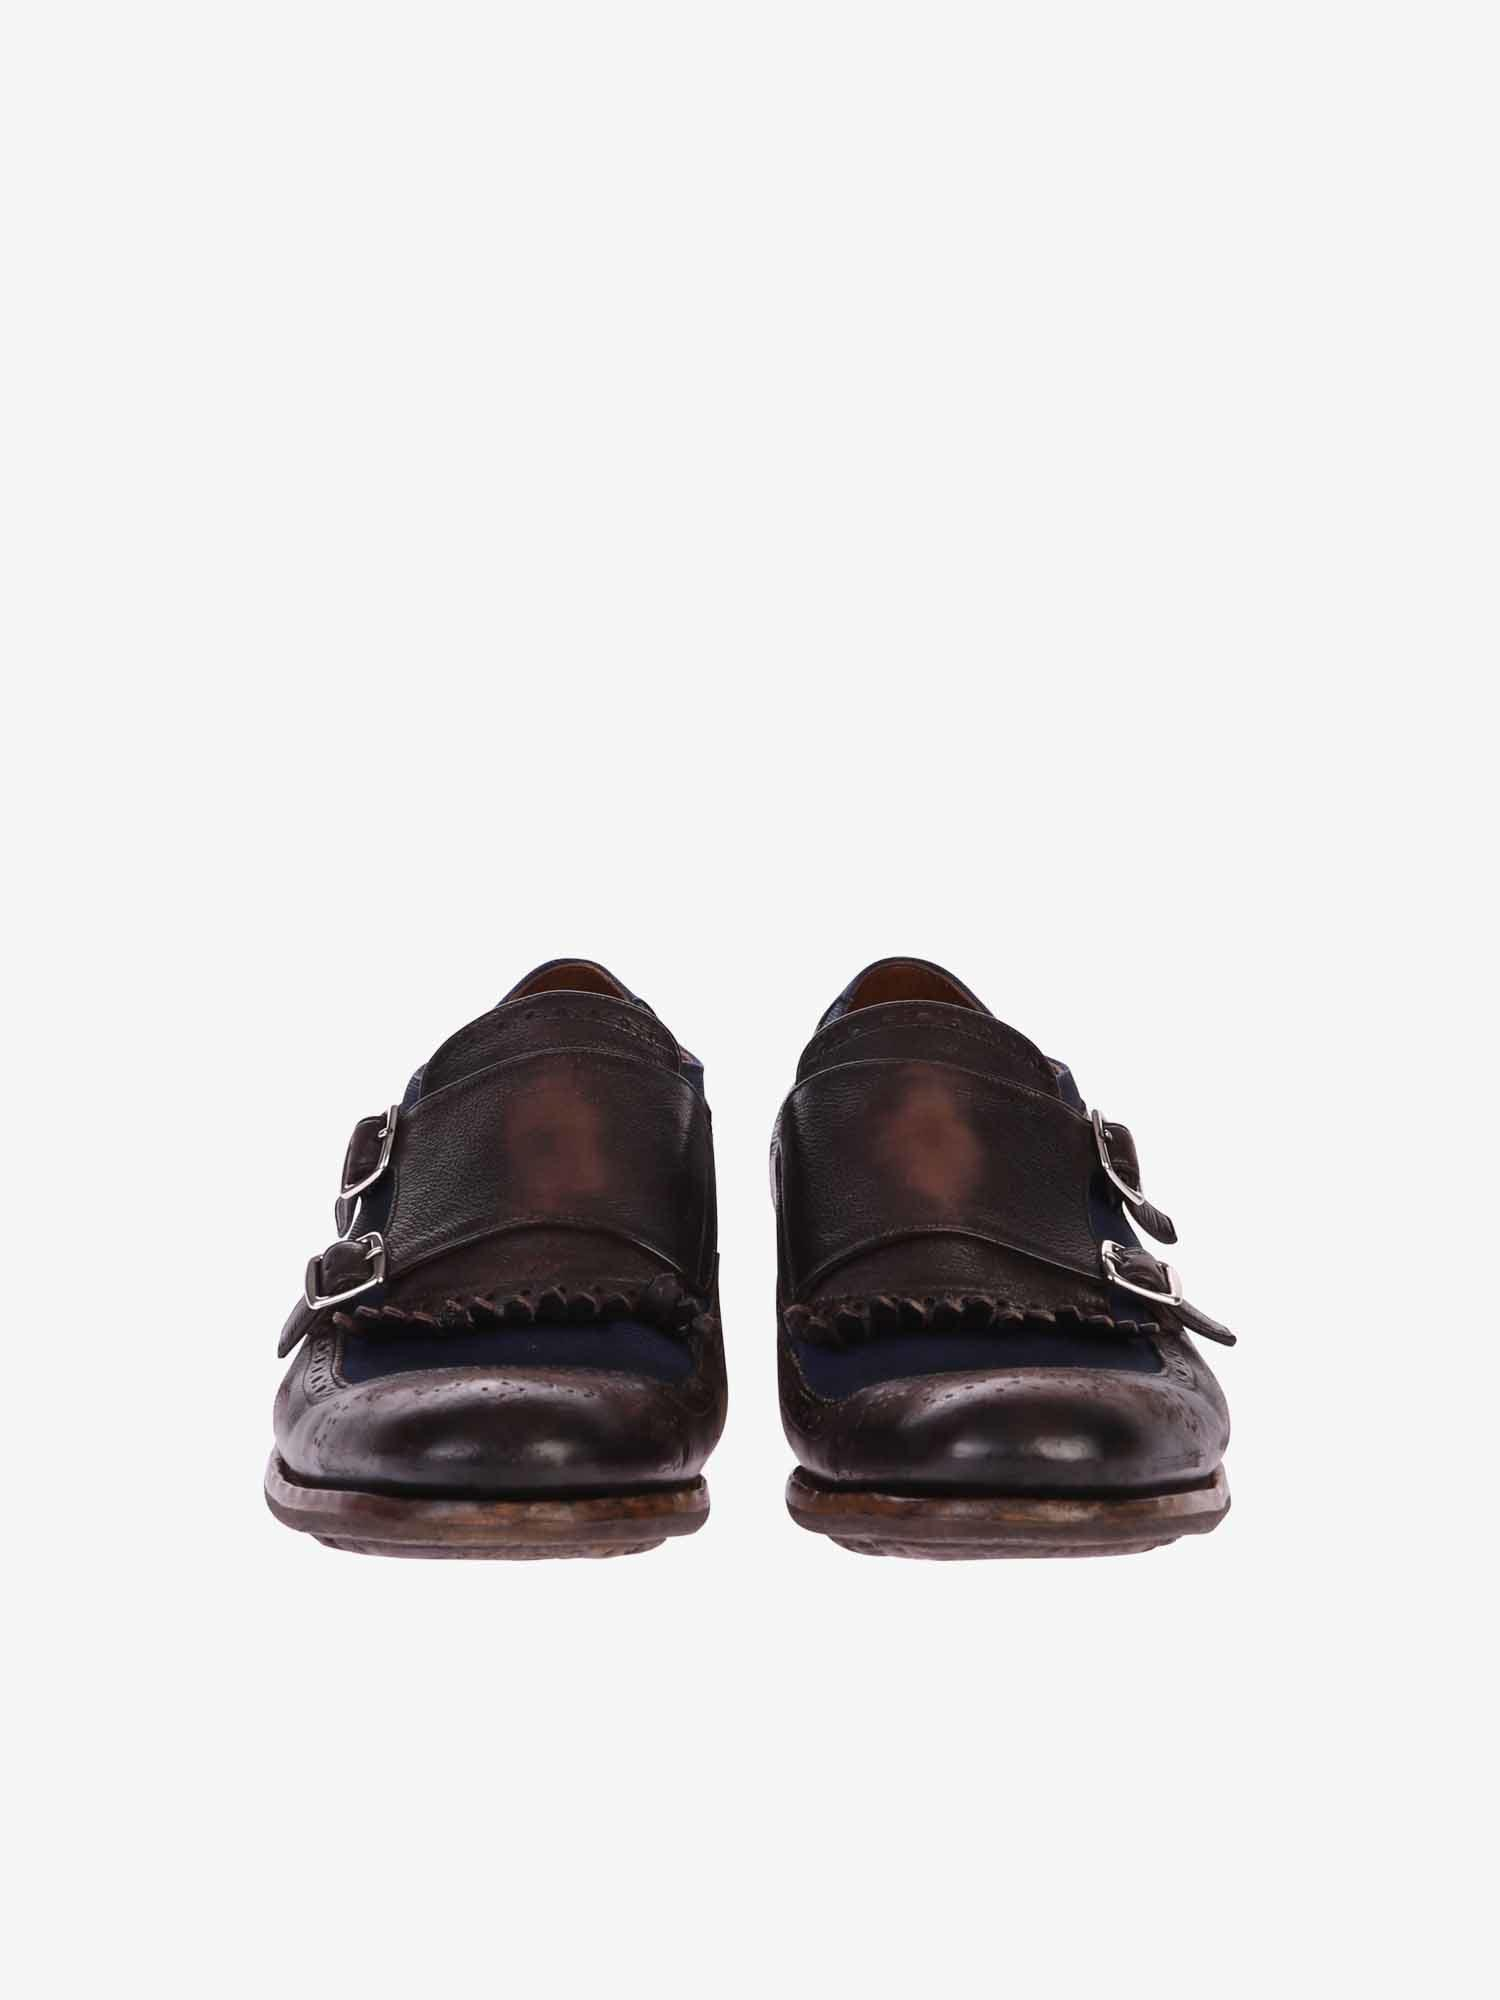 c6c48c468be Lyst - Church s Shanghai Leather And Fabric Shoes for Men